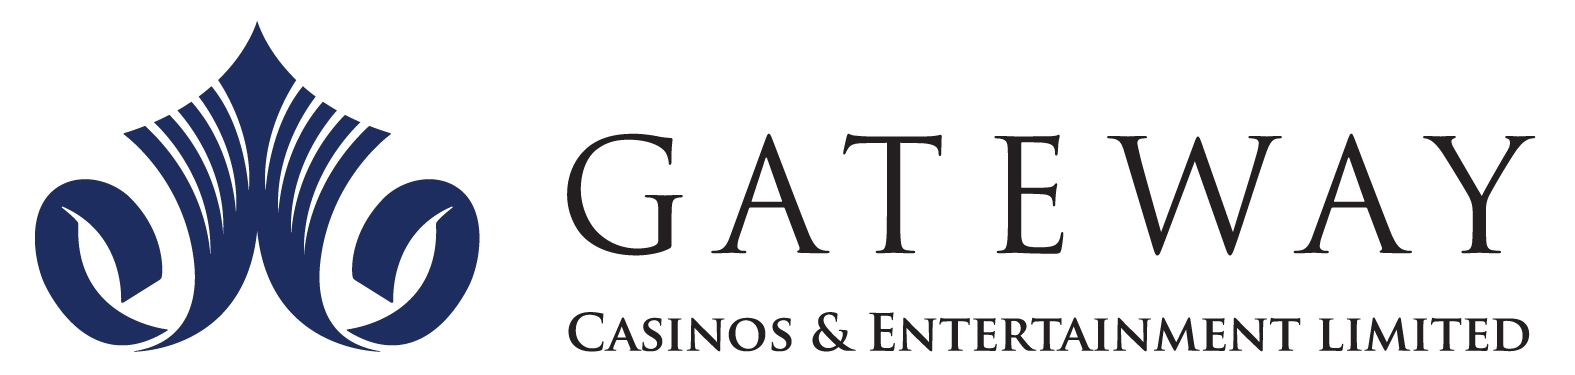 GatewayLogo.jpg